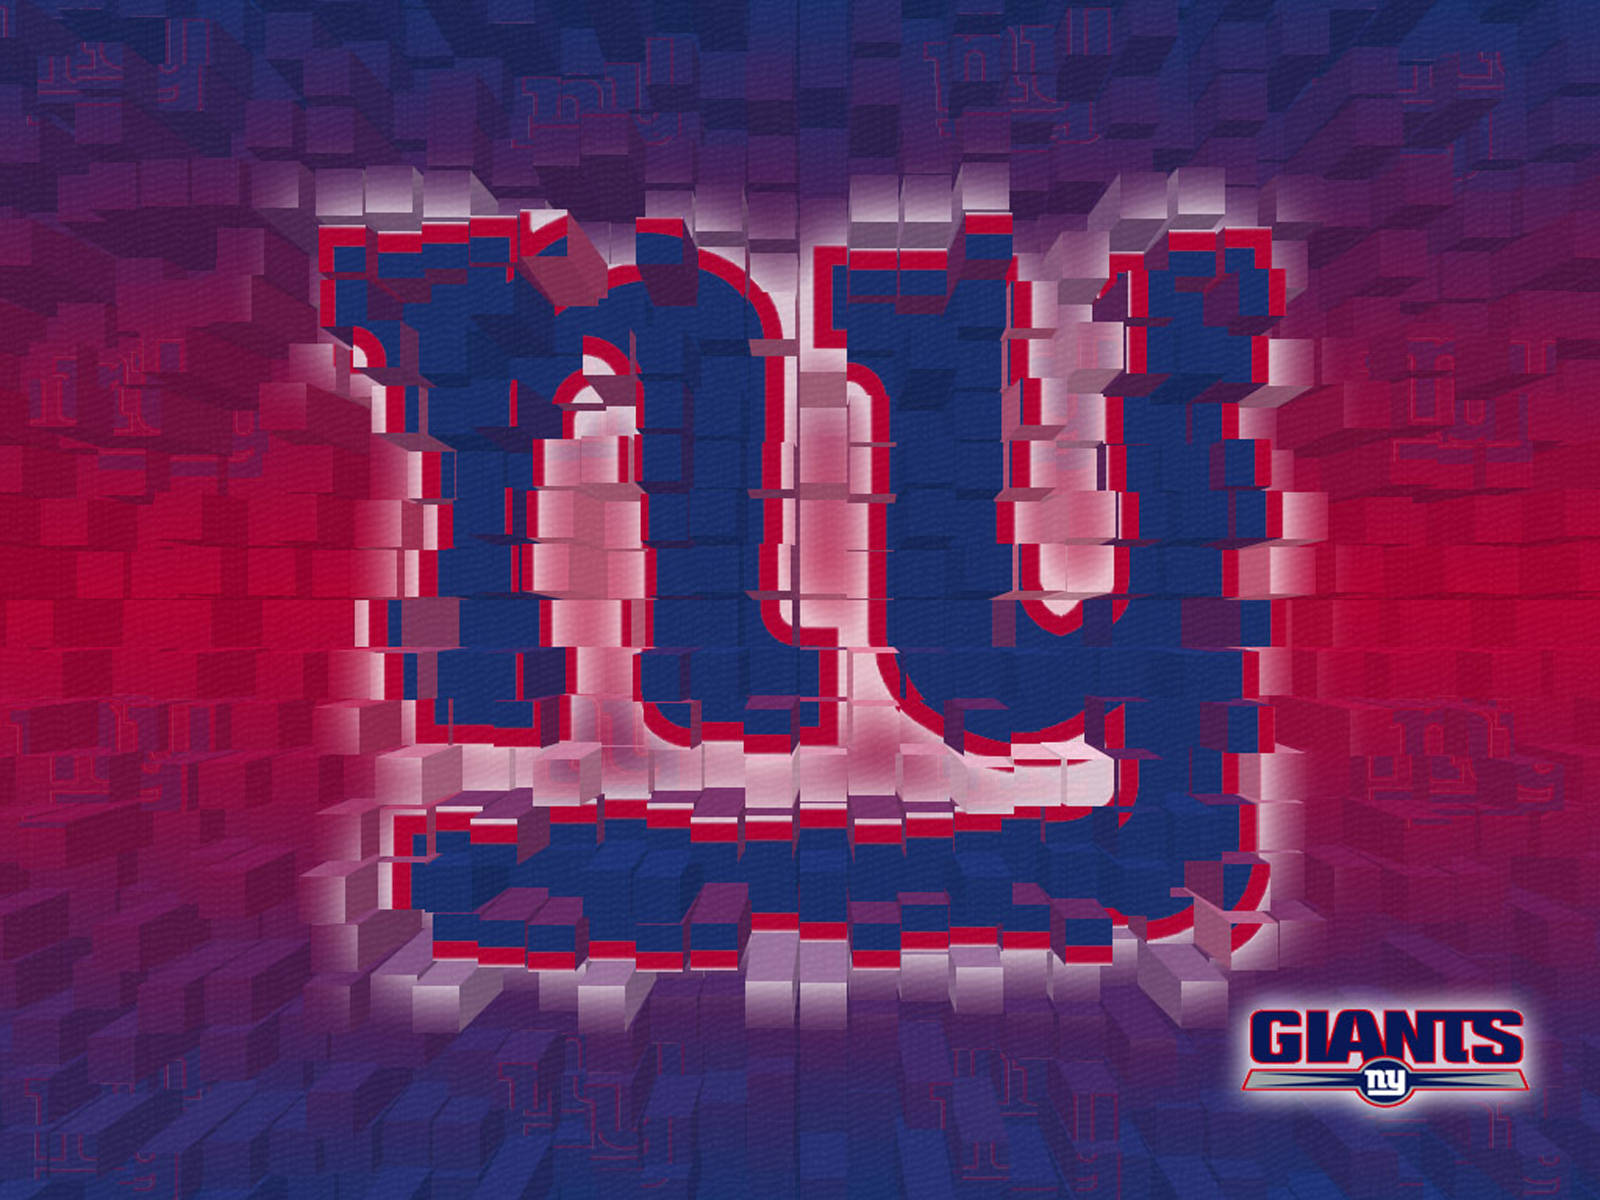 ca8a7ced8 New York Giants Wallpapers Desktop Background Wallpapers 1600x1200